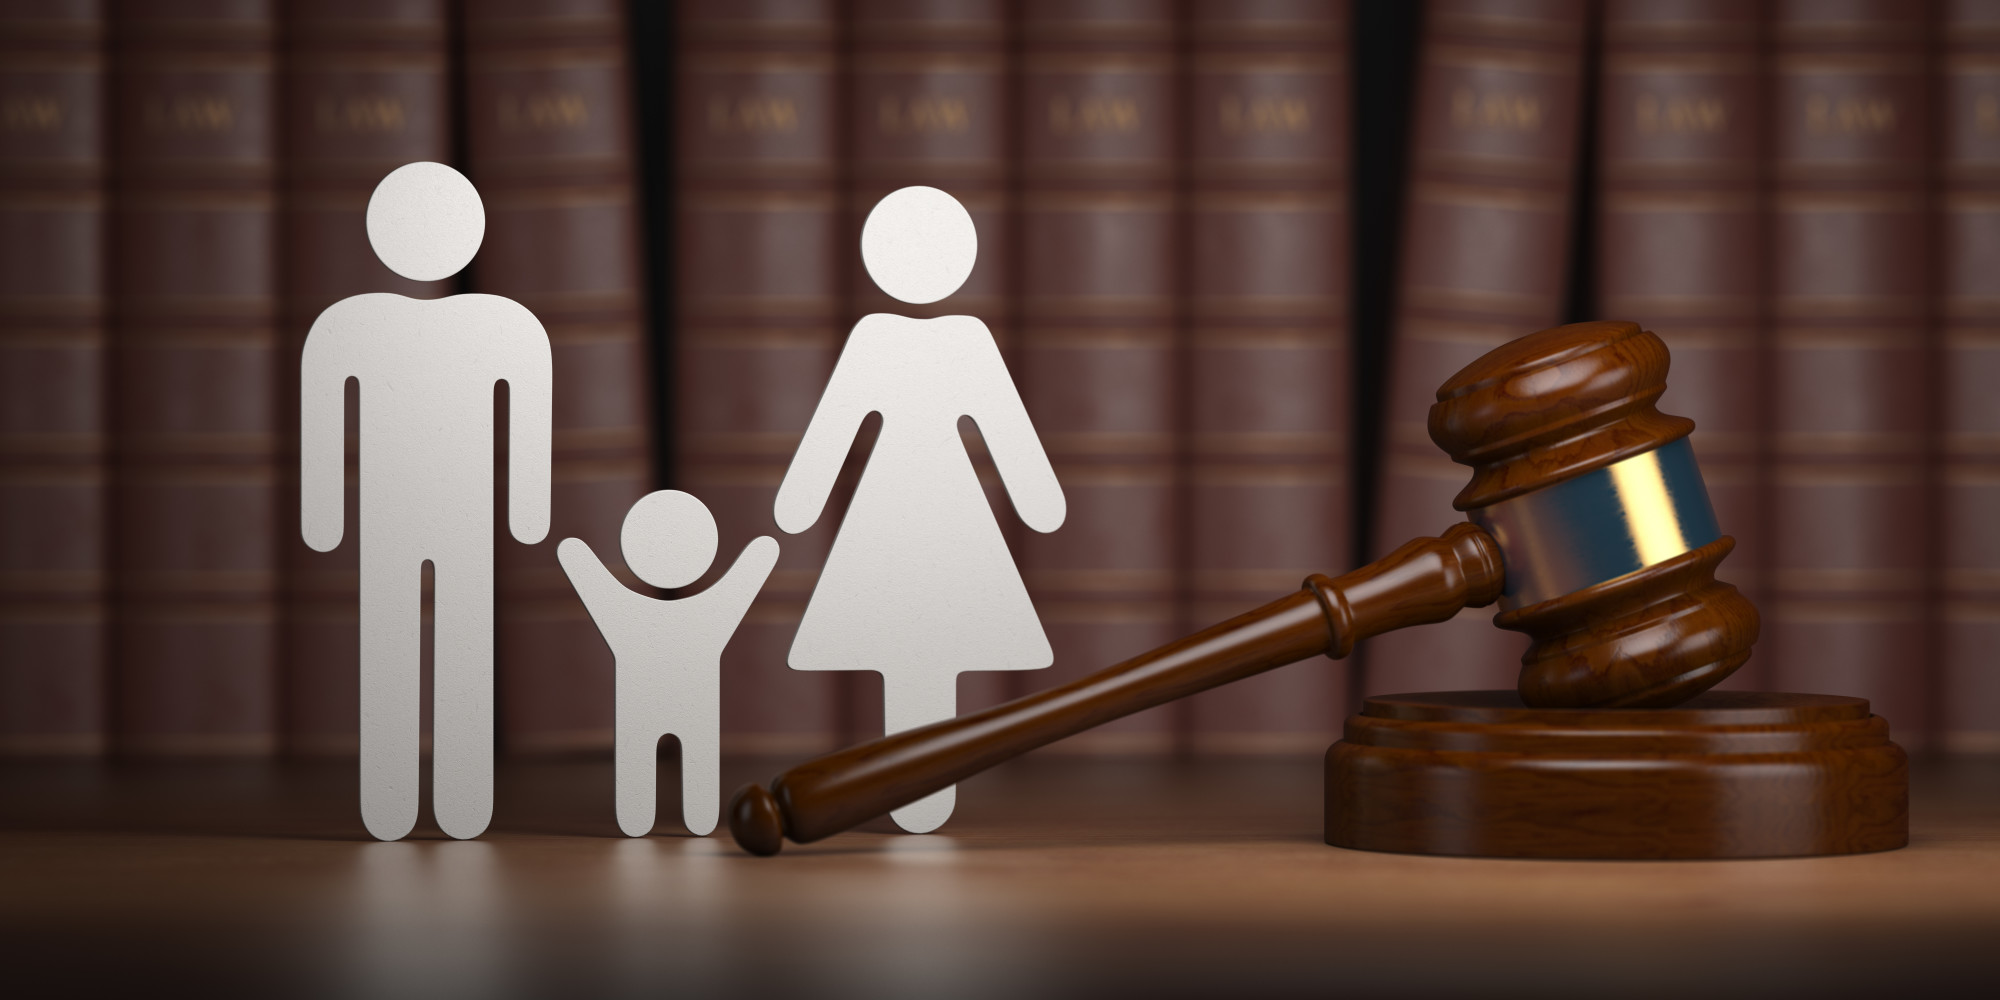 Surrogacy Lawyer - Top 9 Reasons to Hire One - Best Family Law Attorneys  Near Me - Divorce Attorneys Near Me - FamilyAttorneysNearMe.com